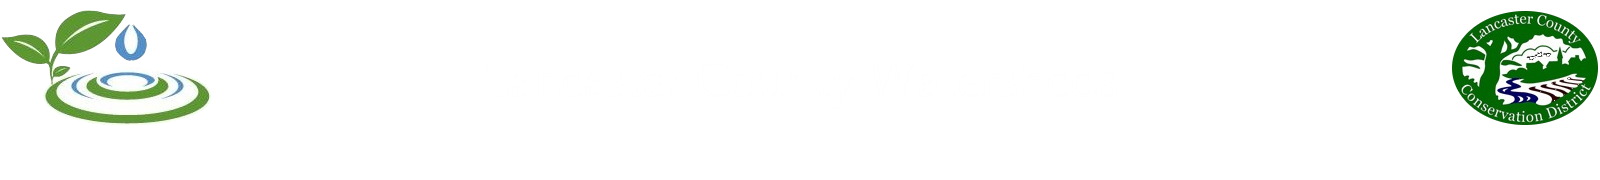 Lancaster County Watersheds